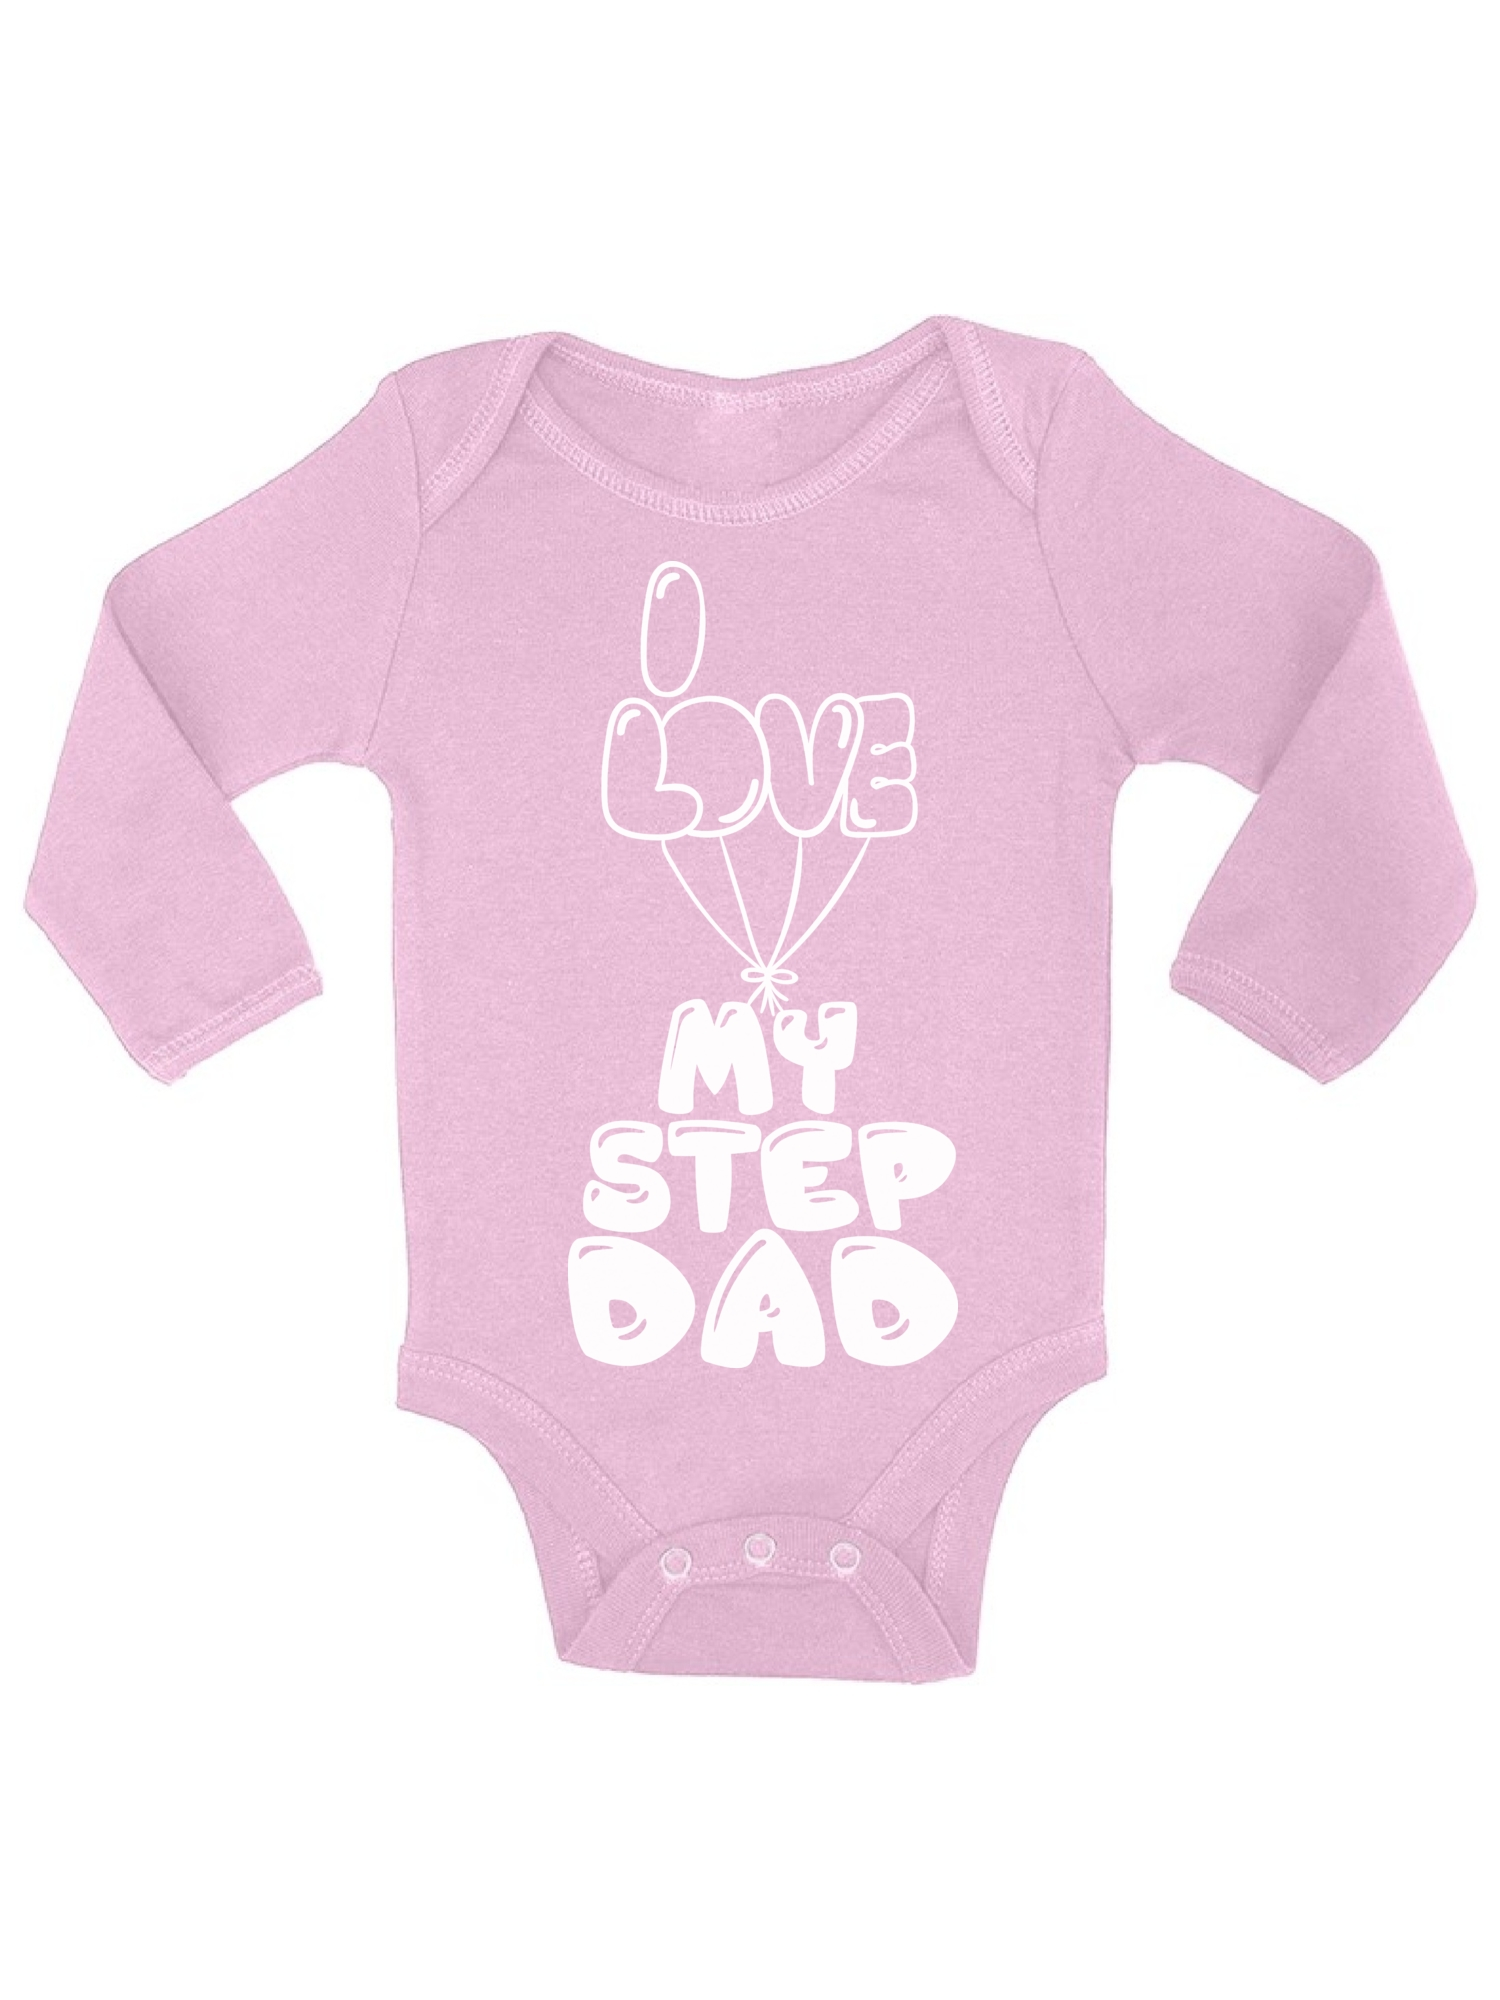 I Love My Stepdad Girls Gift New Personalised Baby Vests Bodysuits for Boys